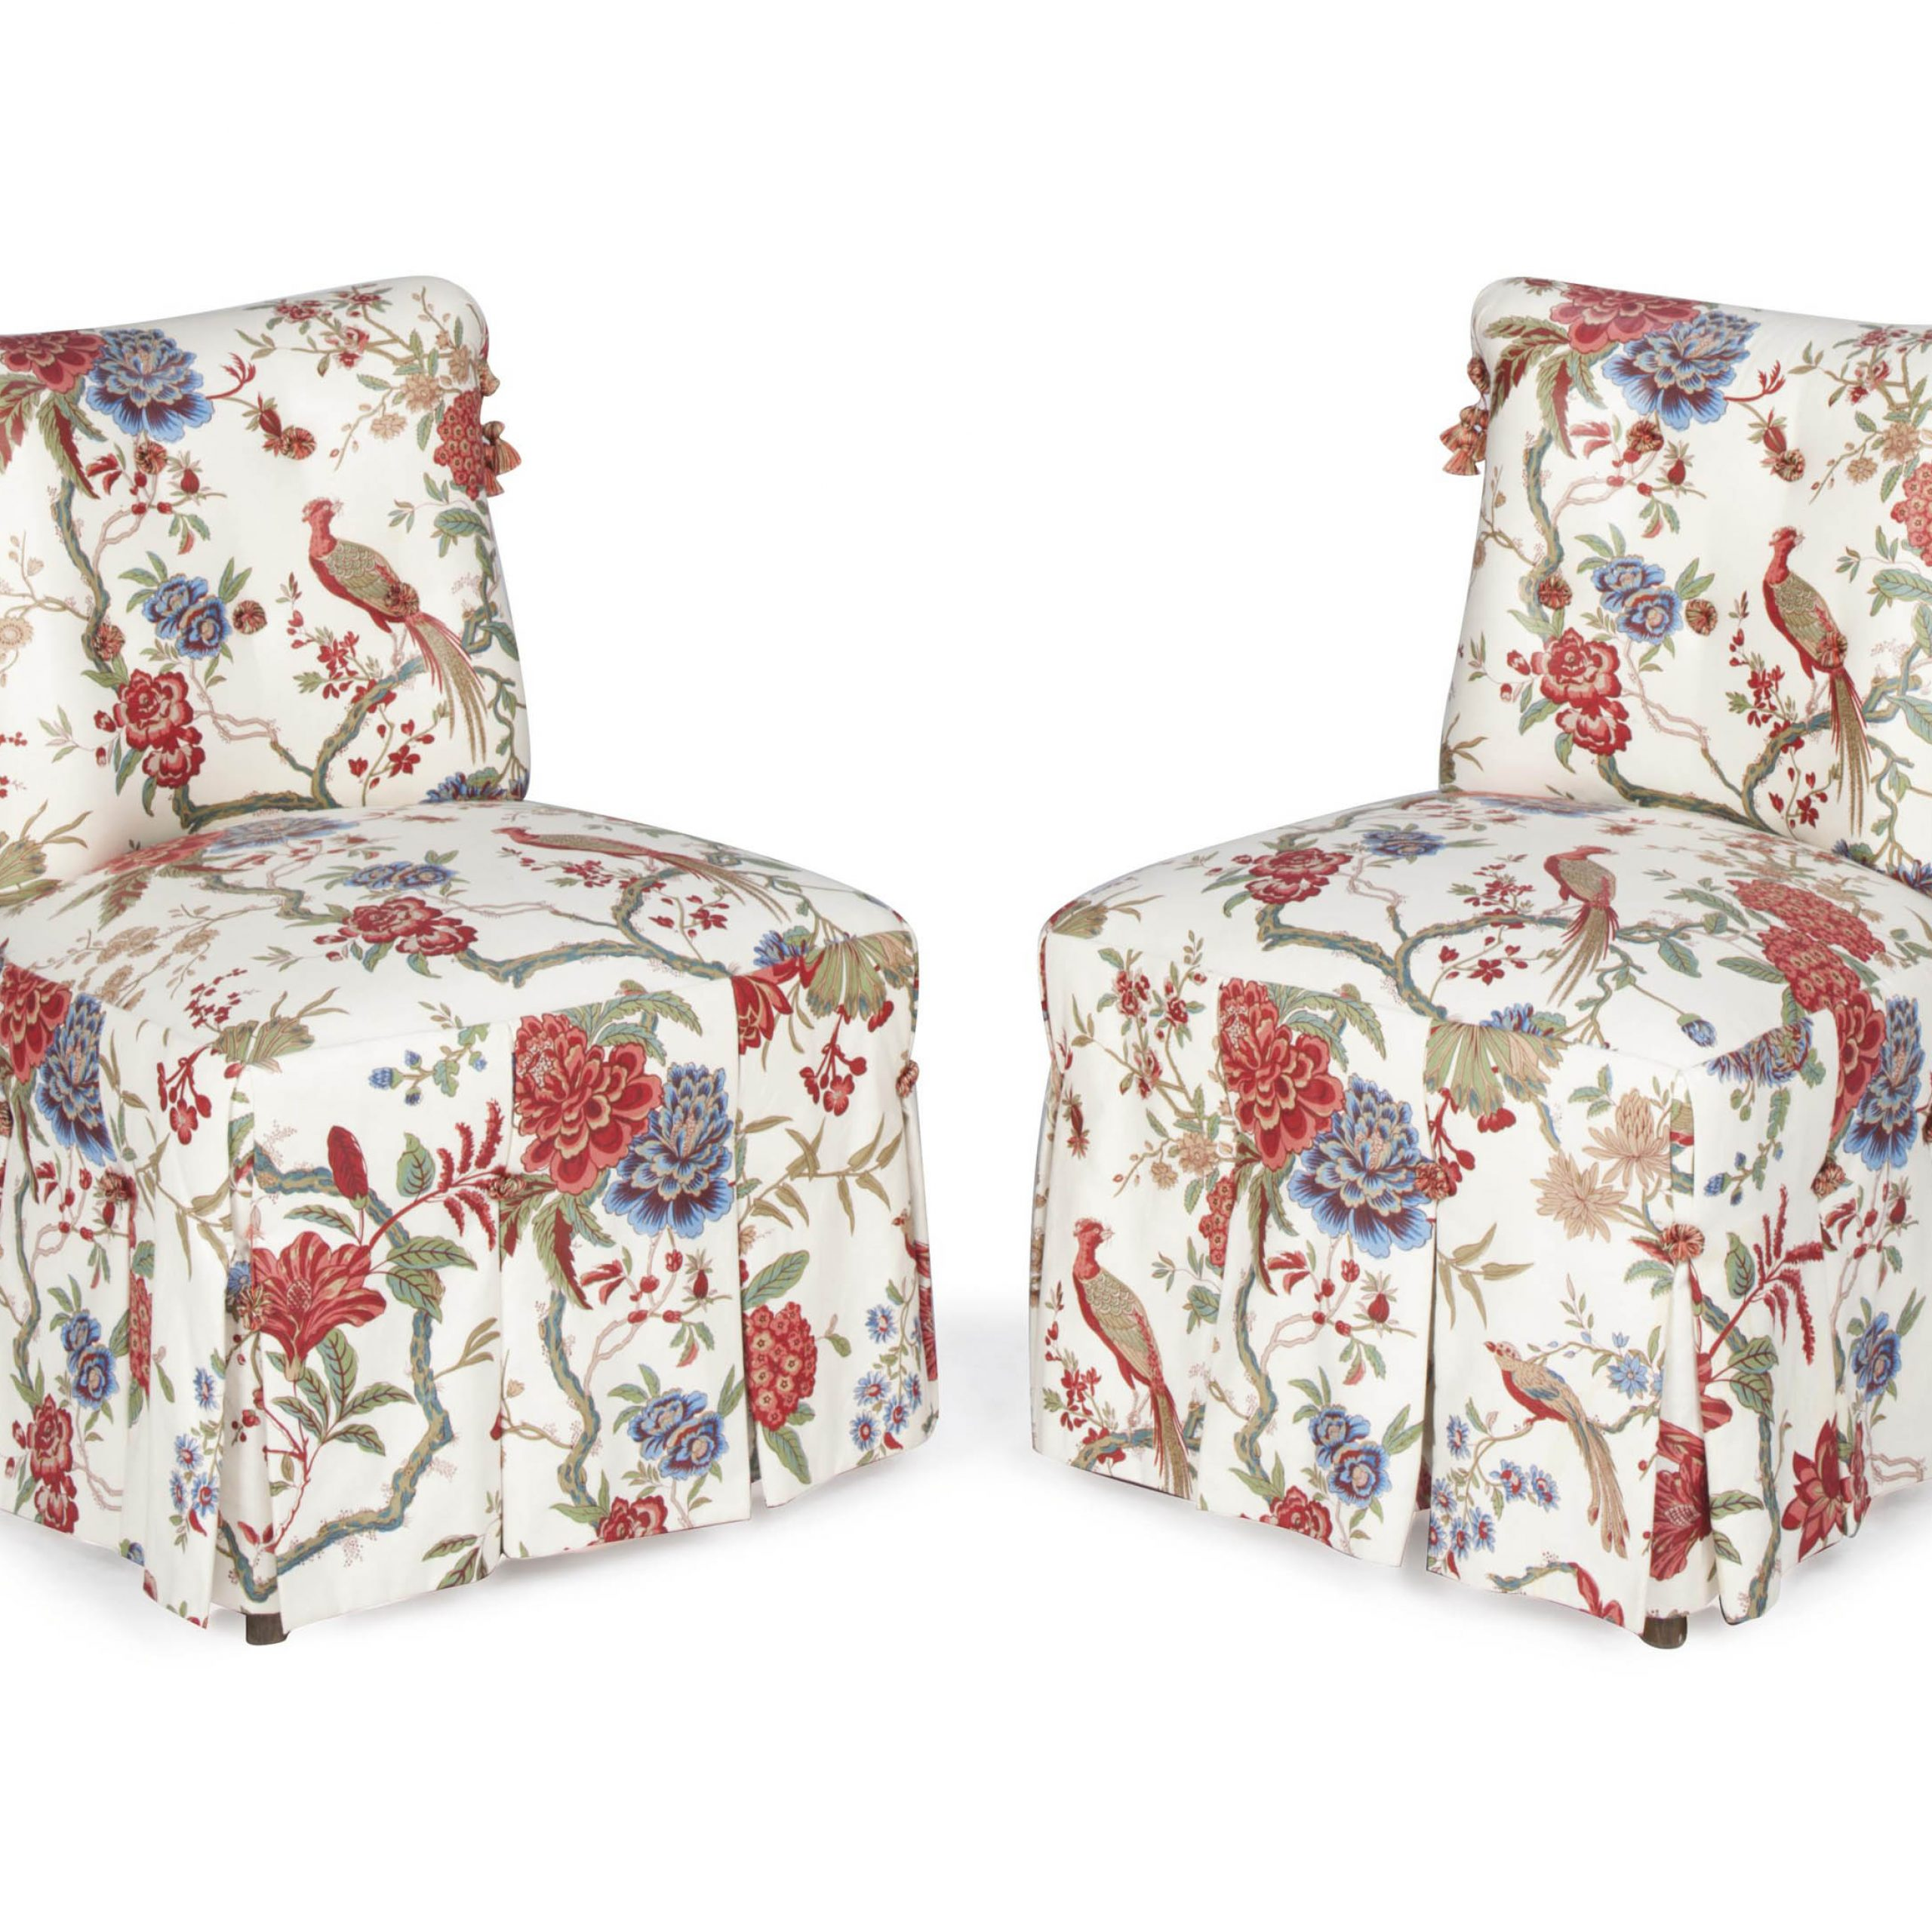 A Pair Of Cream Ground Floral Chintz Upholstered Slipper Intended For Chintz Floral Sofas (View 15 of 15)